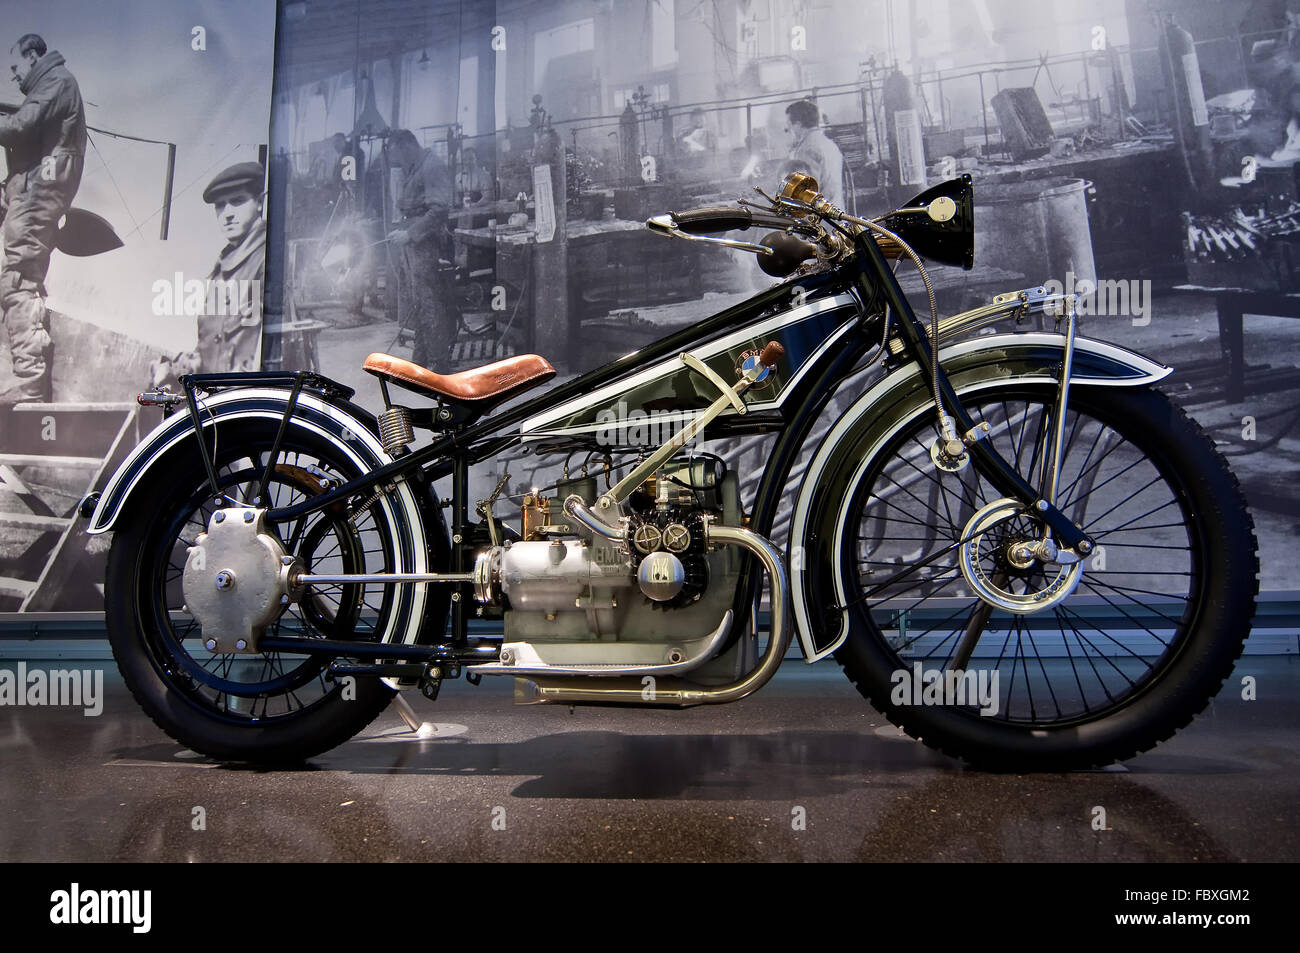 Bmw Bike Stock Photos & Bmw Bike Stock Images - Alamy